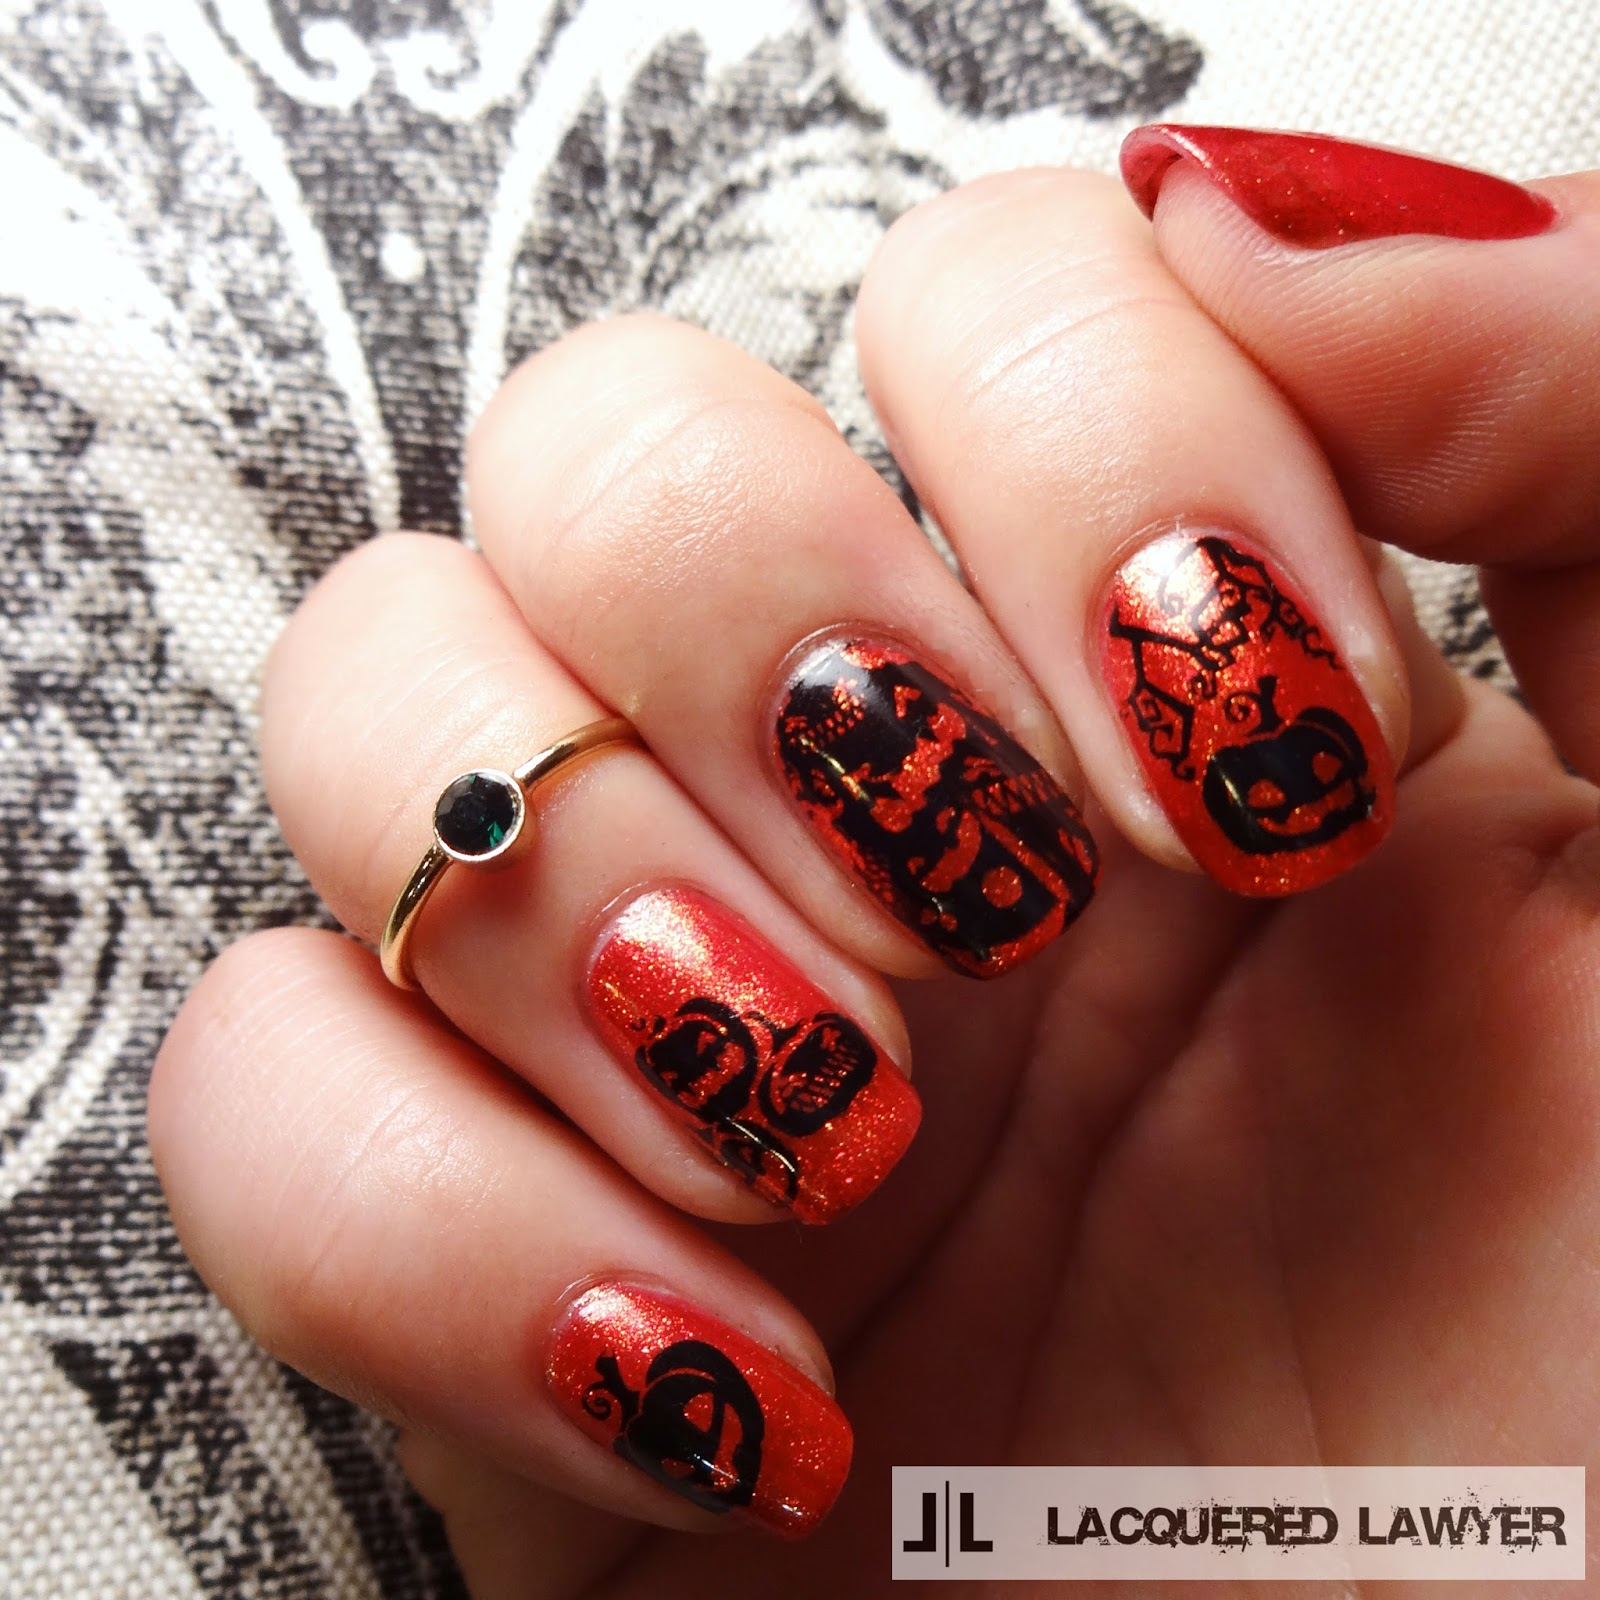 Lacquered Lawyer | Nail Art Blog: Jack-O-Lanterns